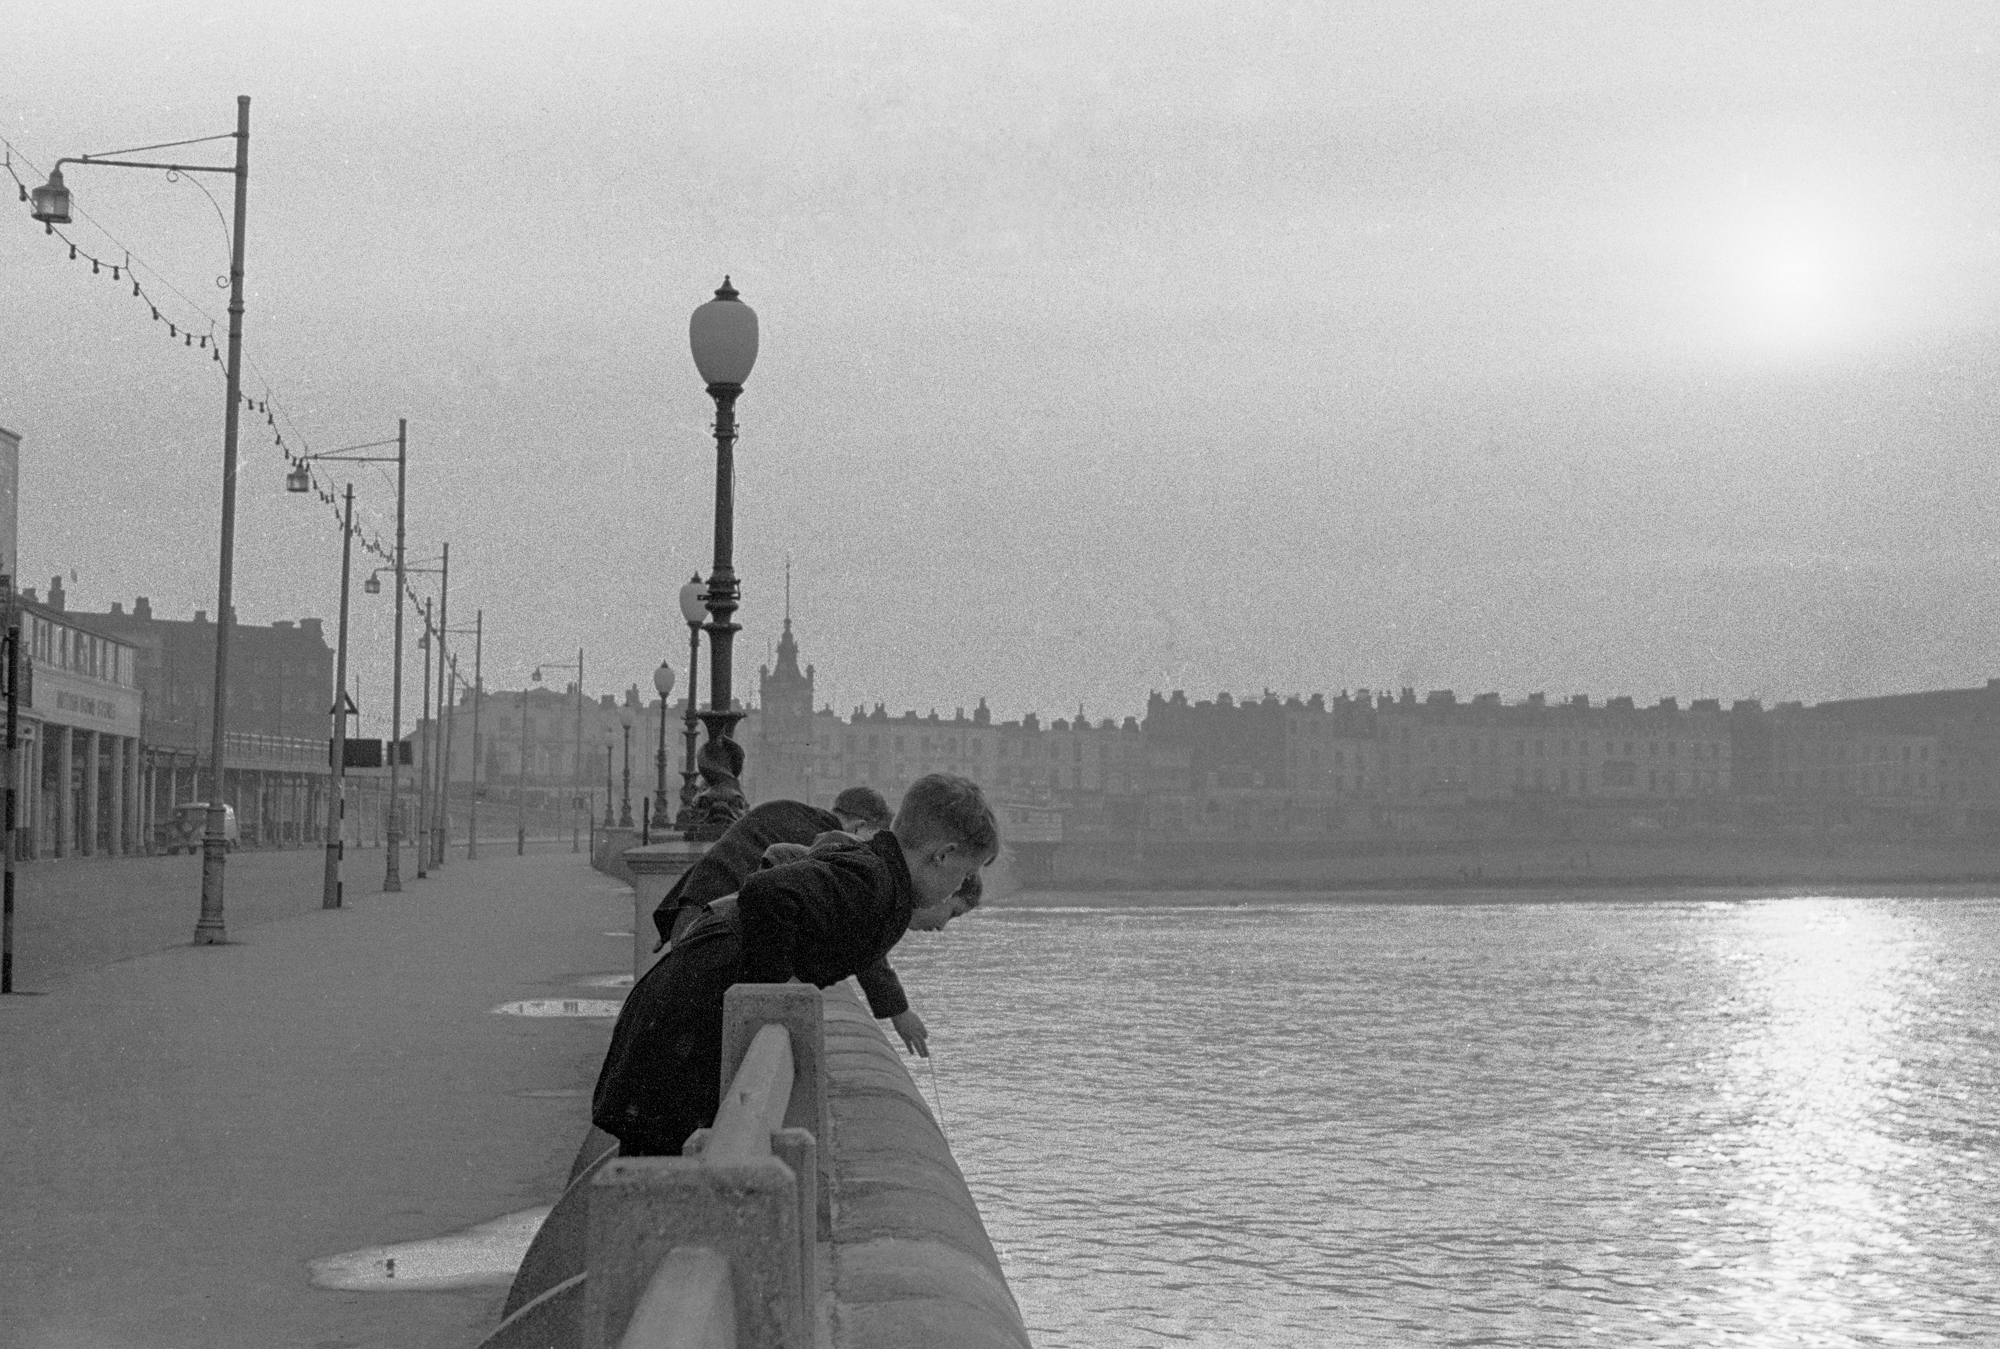 OUT AND ABOUT - Boys Fishing - Margate - 1962